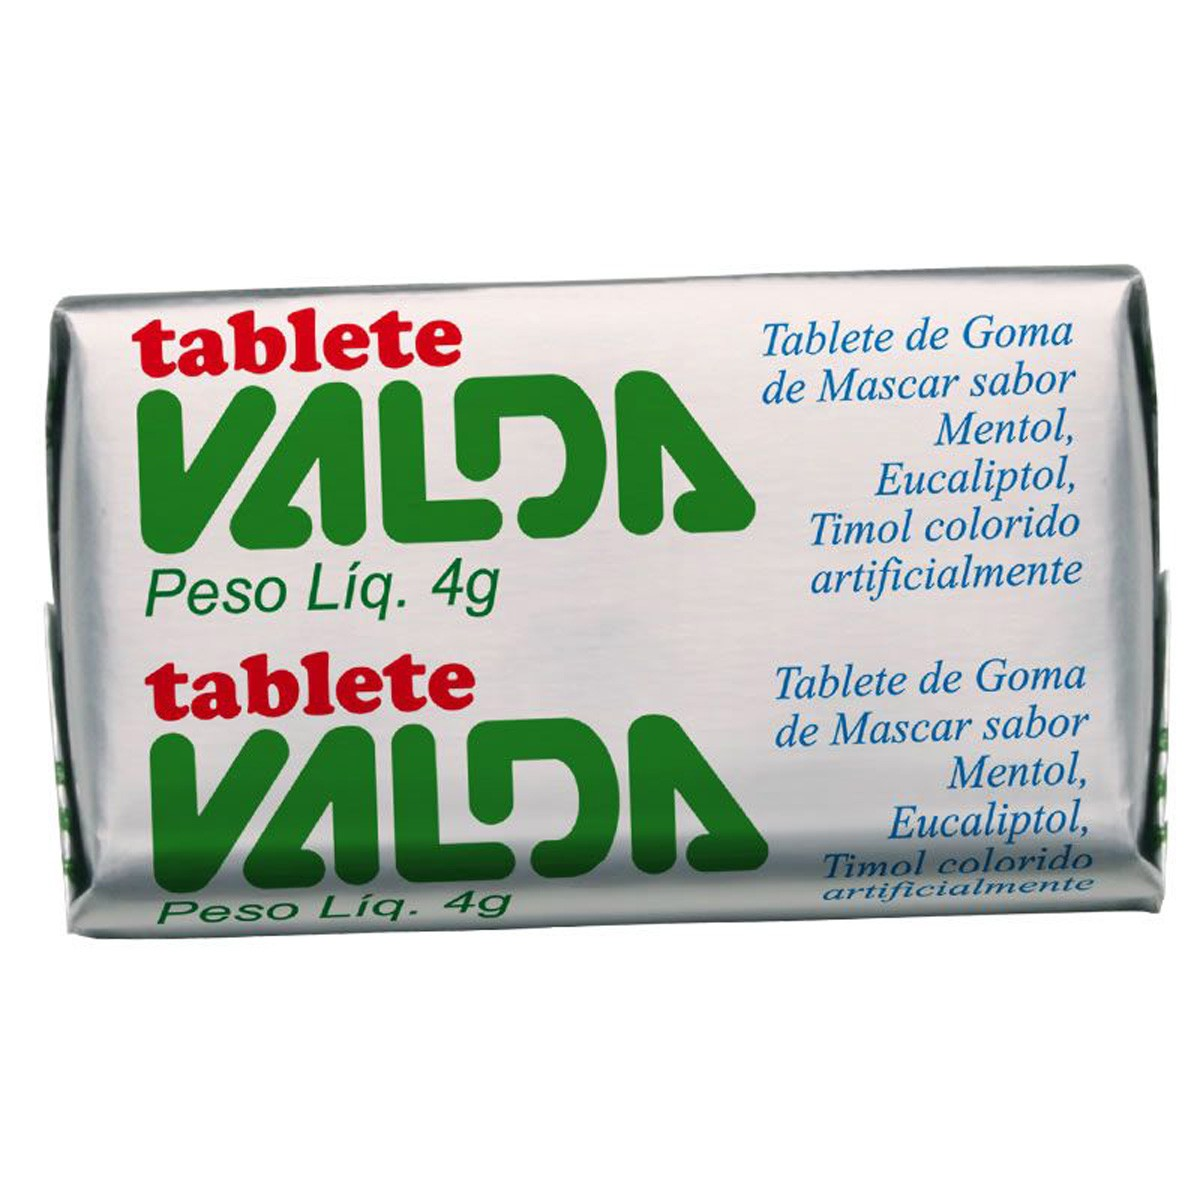 Valda Chiclete Tablete 4 G